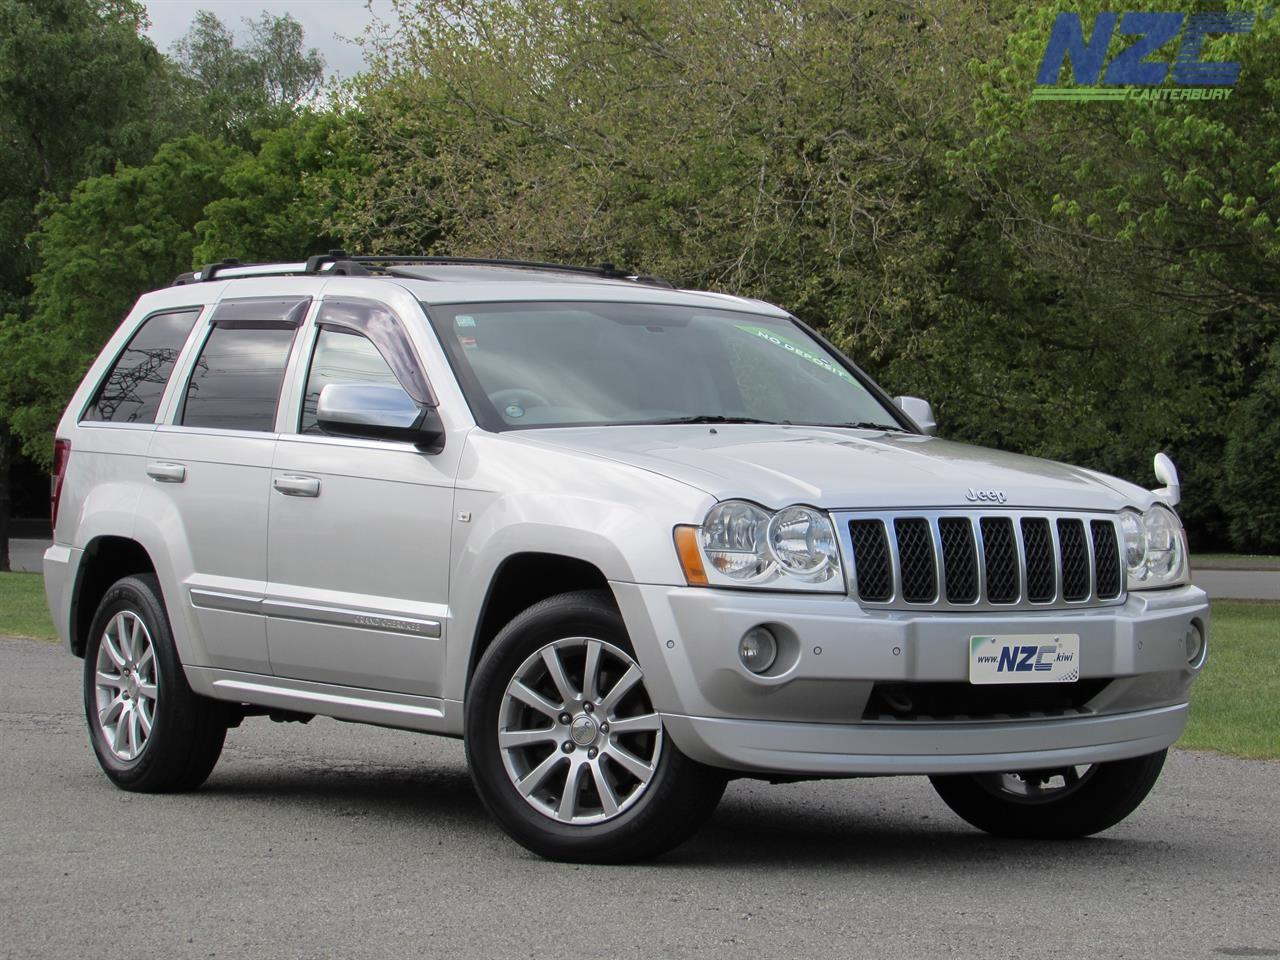 image-0, 2007 Jeep Grand Cherokee Limited 5.7L Hemi V8 at Christchurch